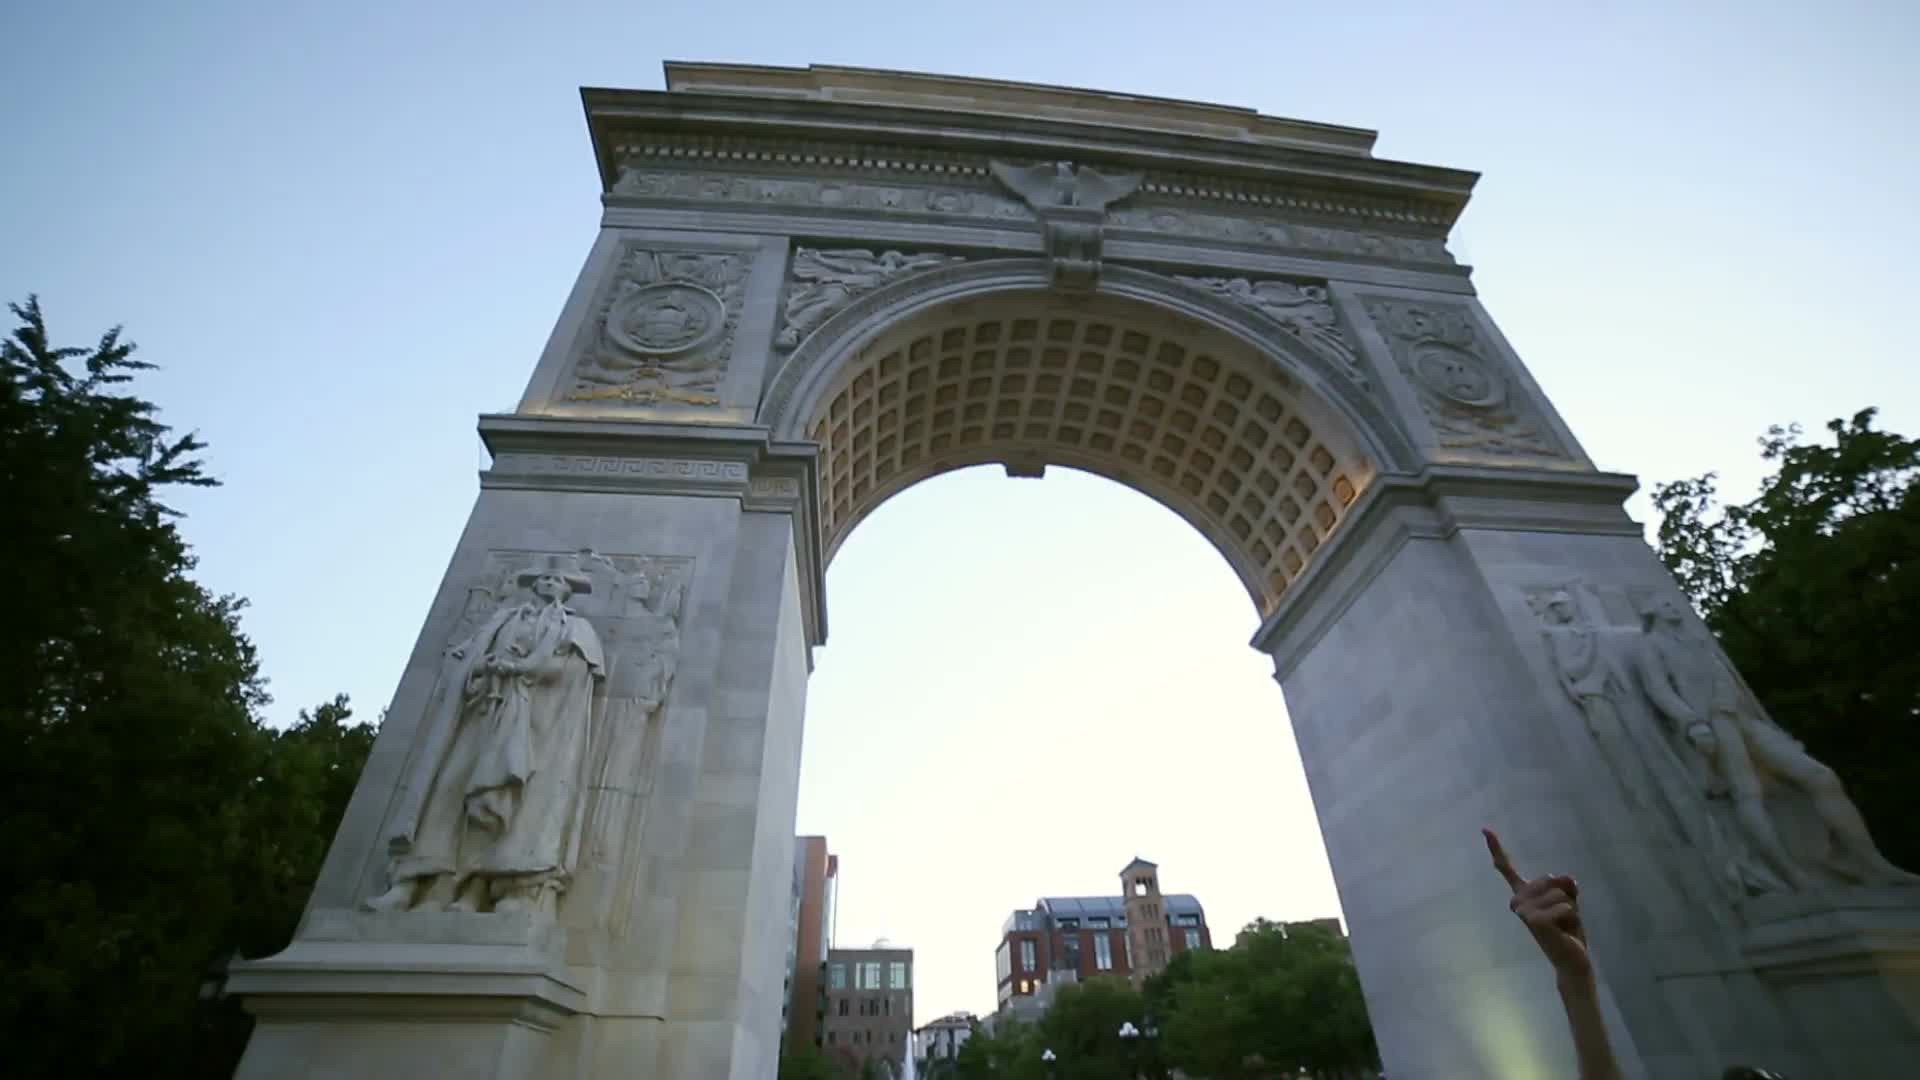 man arguing with pro-Palestinian protestor under arch in Washington Square Park in NYC